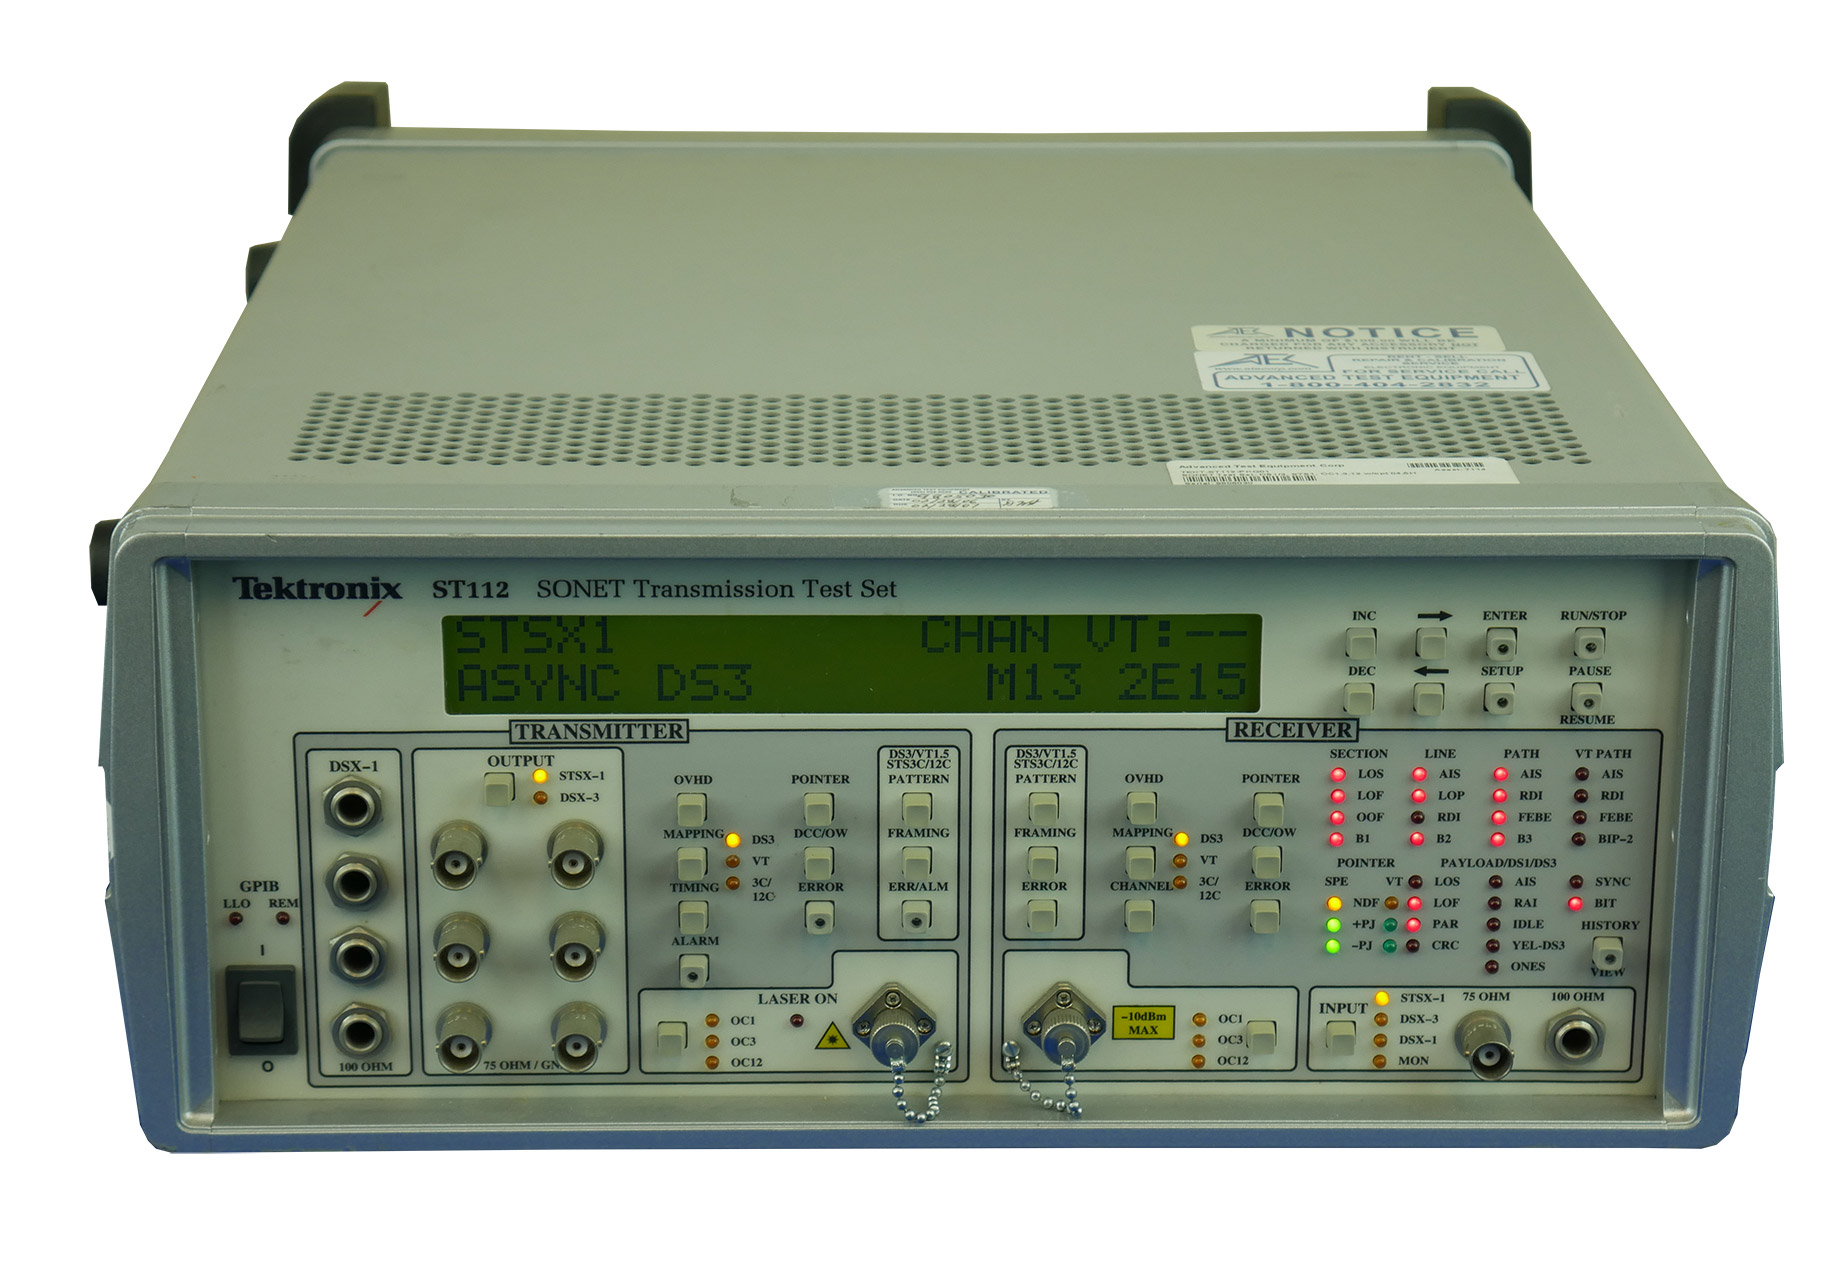 Tektronix ST112 SONET Test Set